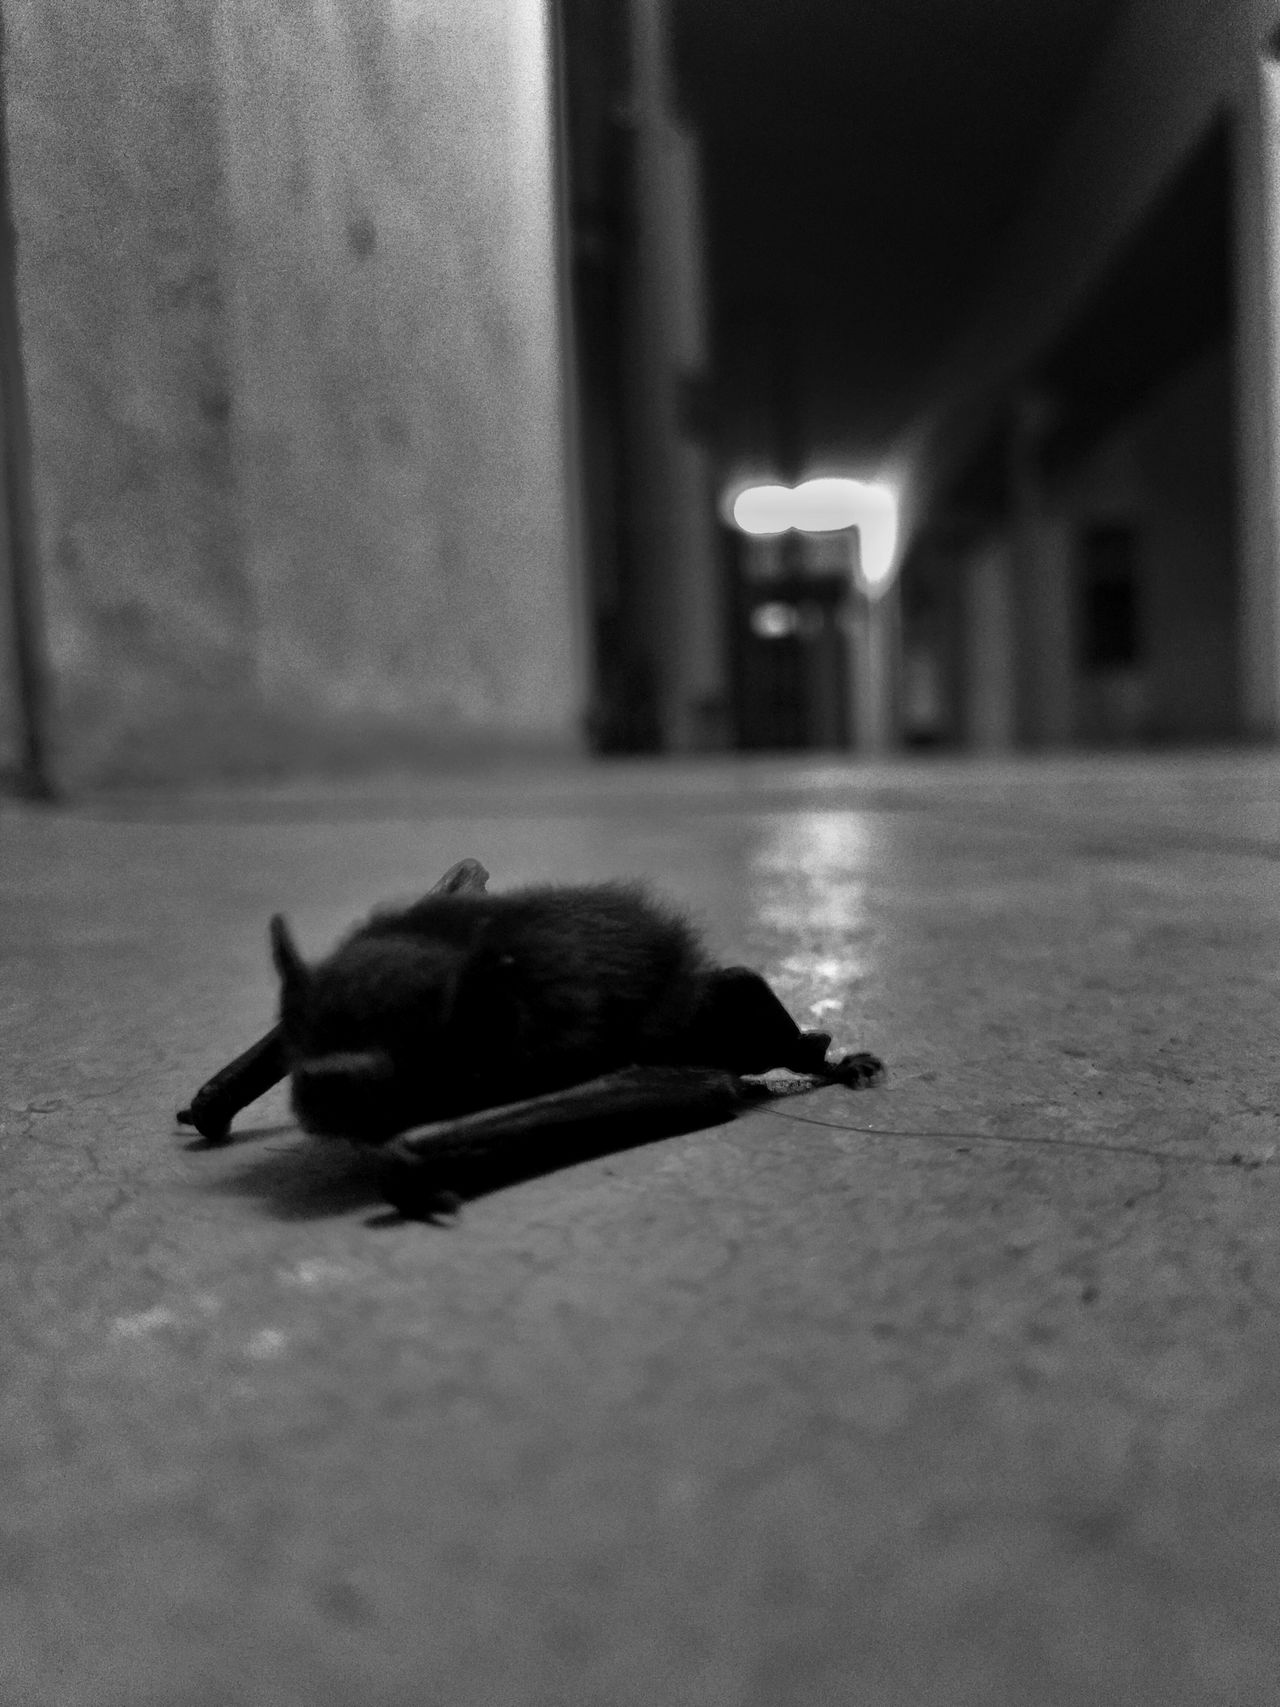 Flying crawler Bat Nocturnal Flying Mammals Nightphotography Beauty In Nature Blackandwhite Photography Mobile Photography Batman ❤ Bats Batsinthenight